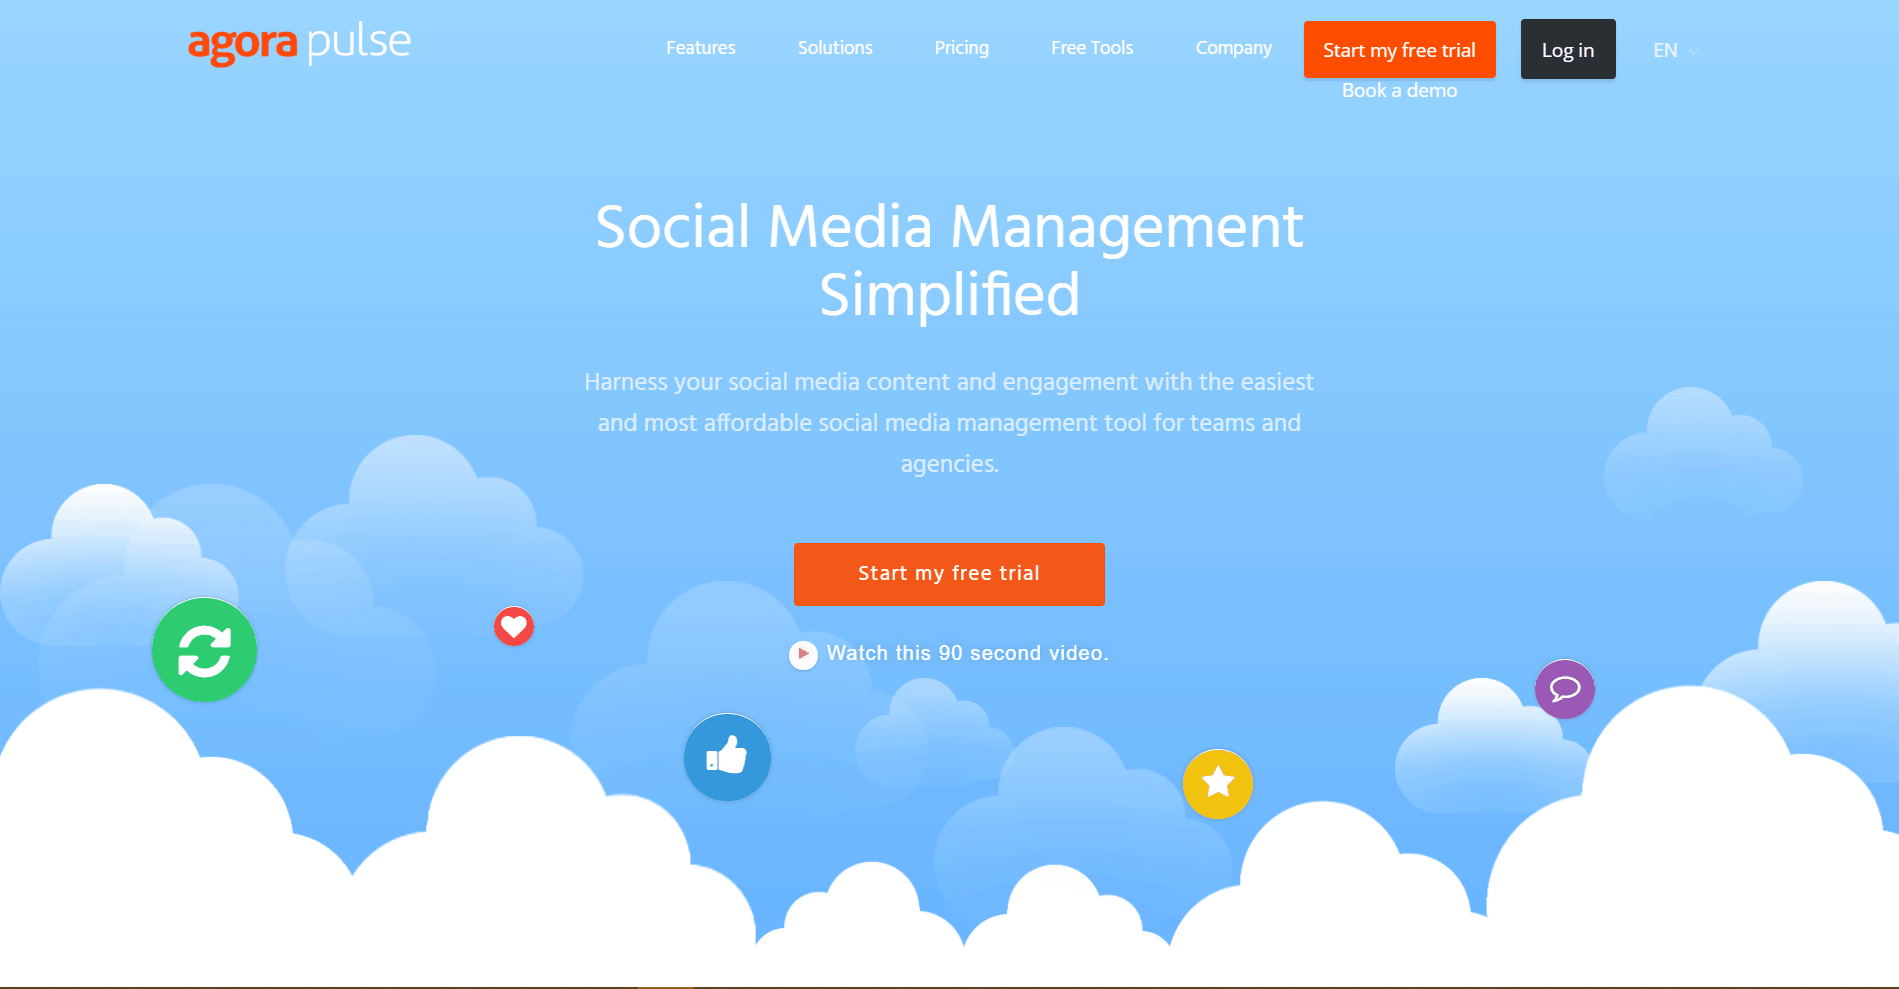 Agorapulse Social Media Marketing Tool